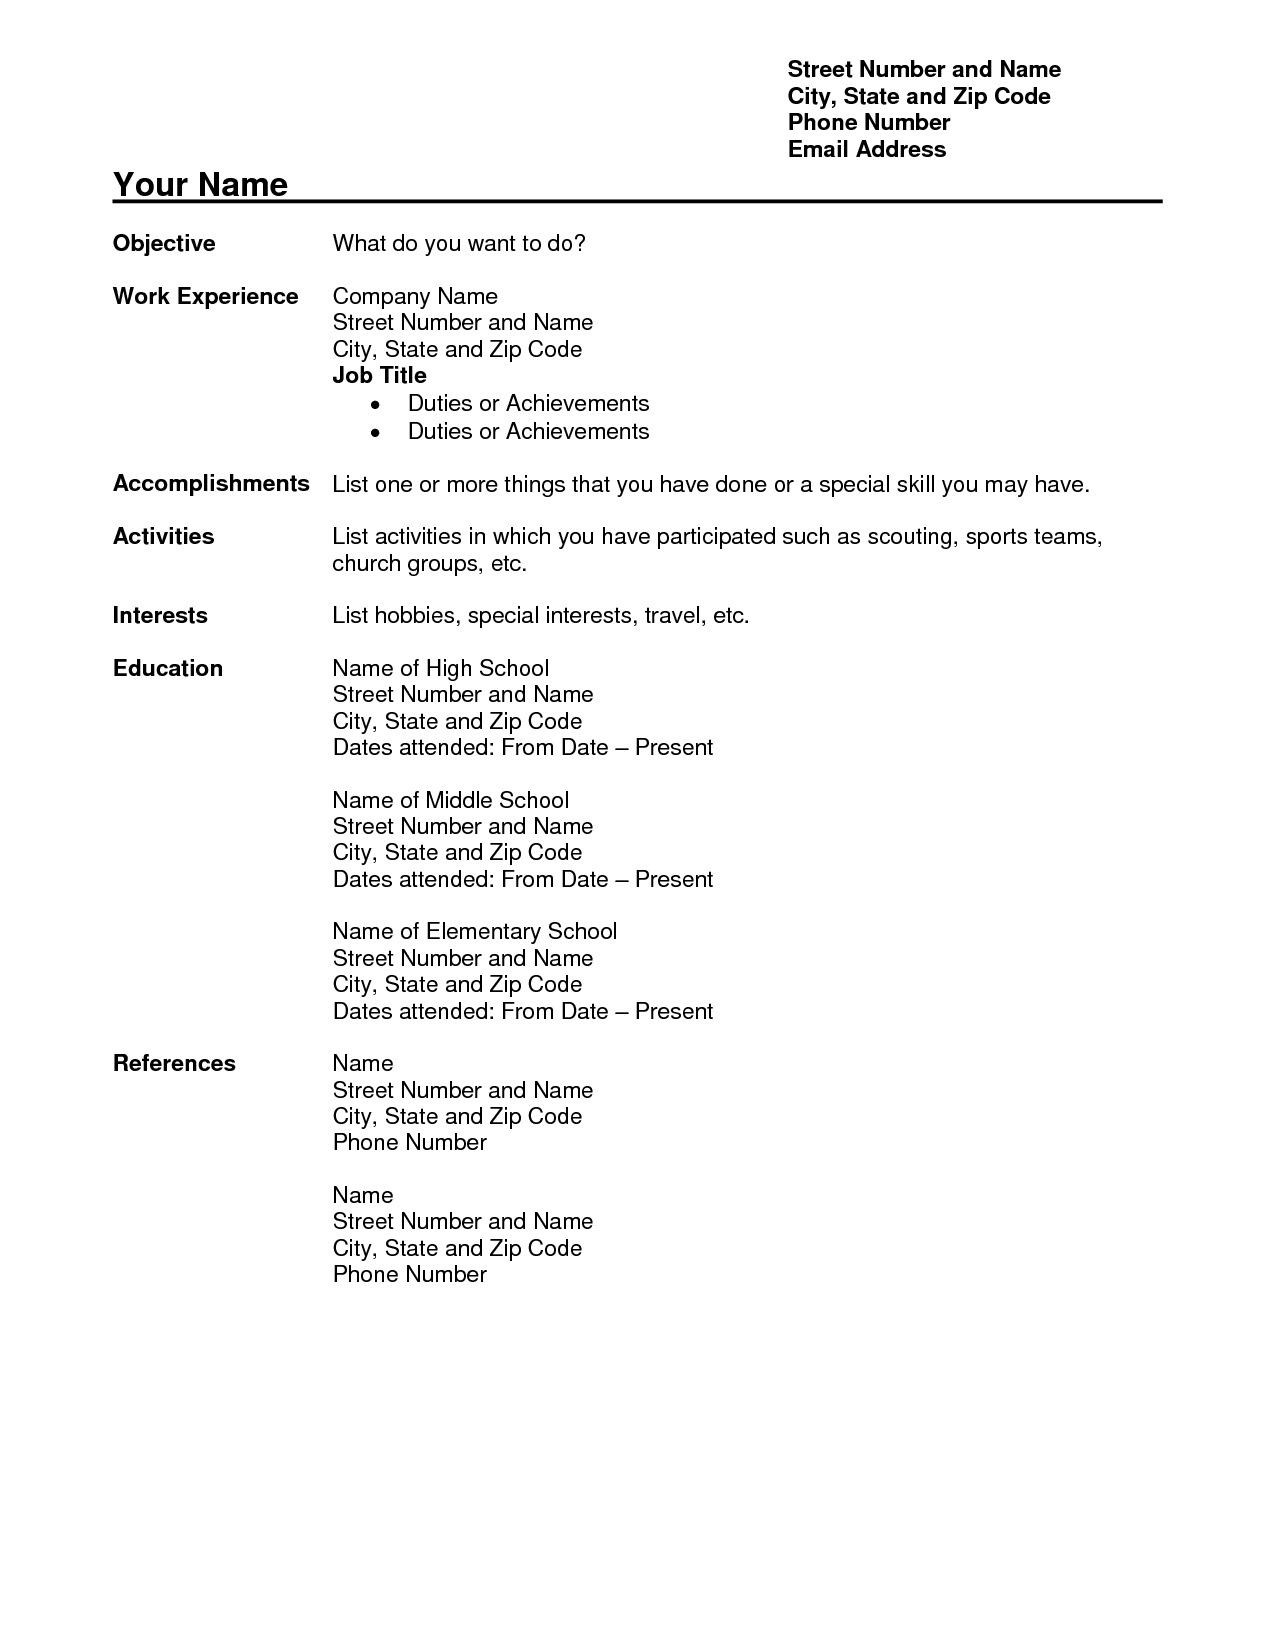 free teacher resume templates download free teacher resume templates download free teacher resume templates microsoft - Simple Resume Format Free Download In Ms Word